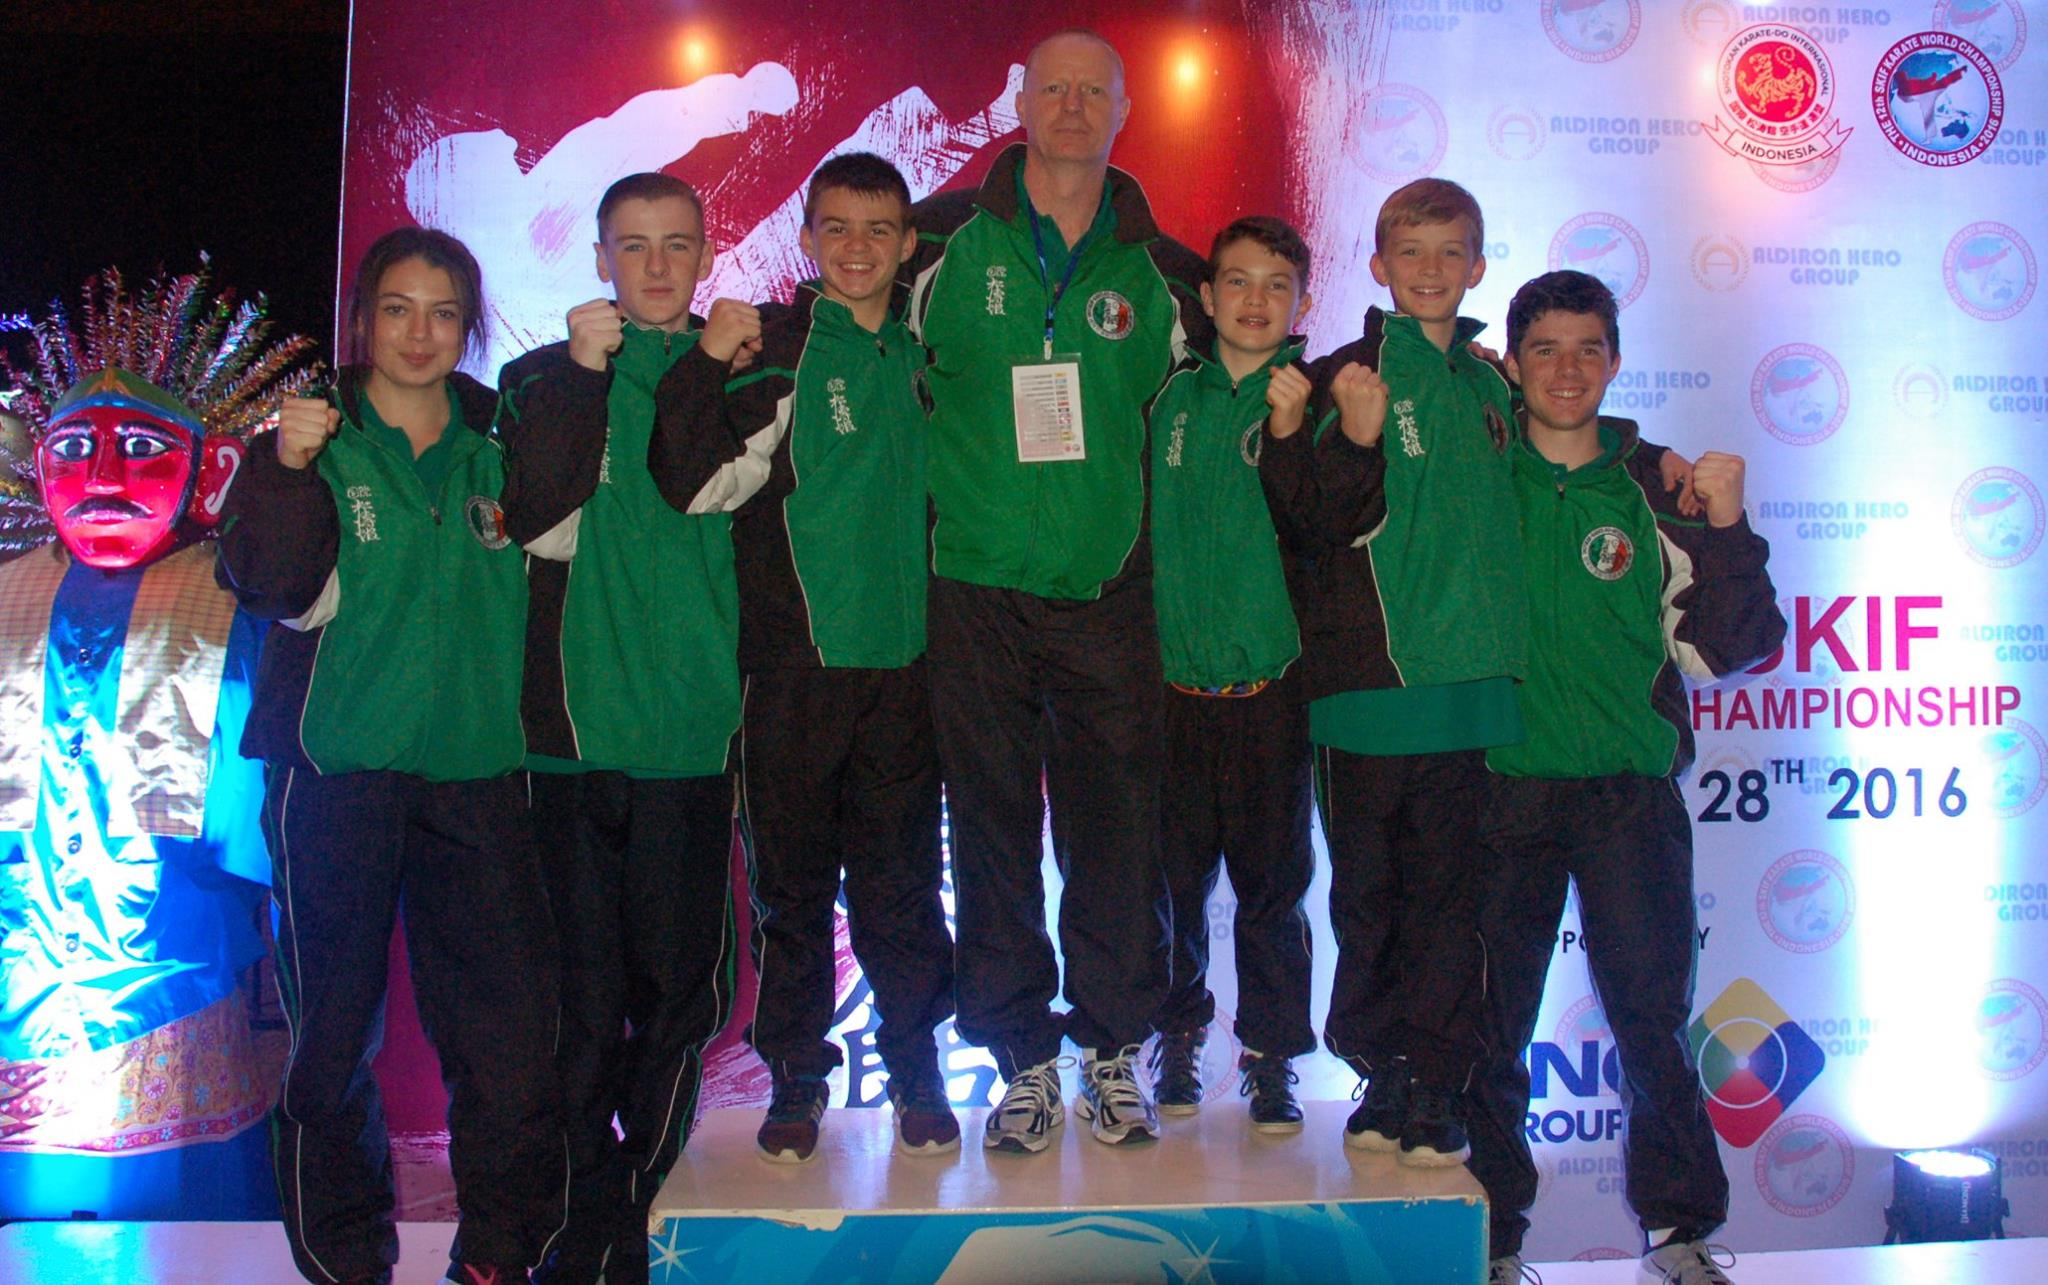 SKIF Ireland Juniors get first World Championships Experience at the 12th SKIF World Championships in Jakarta Indonesia in August 2016